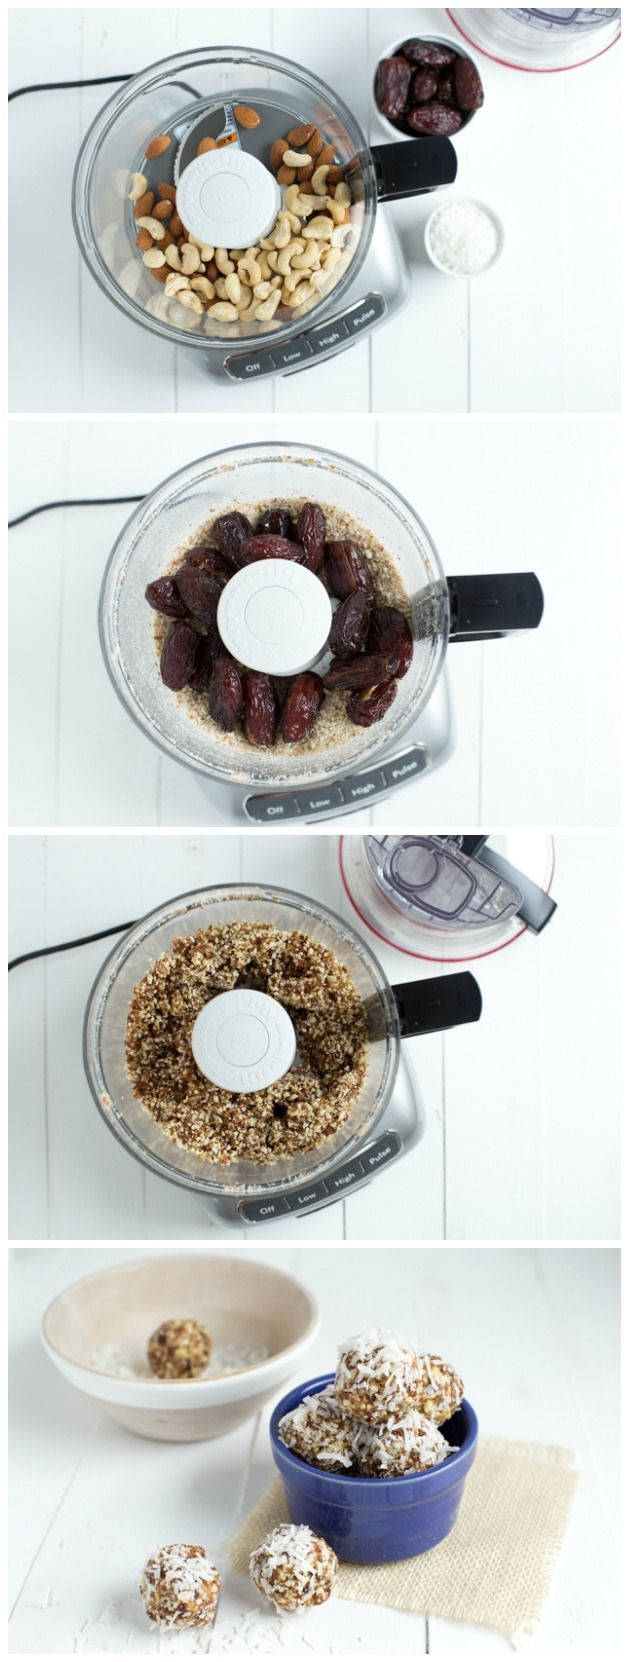 263 best images about Food Processor Recipes on Pinterest